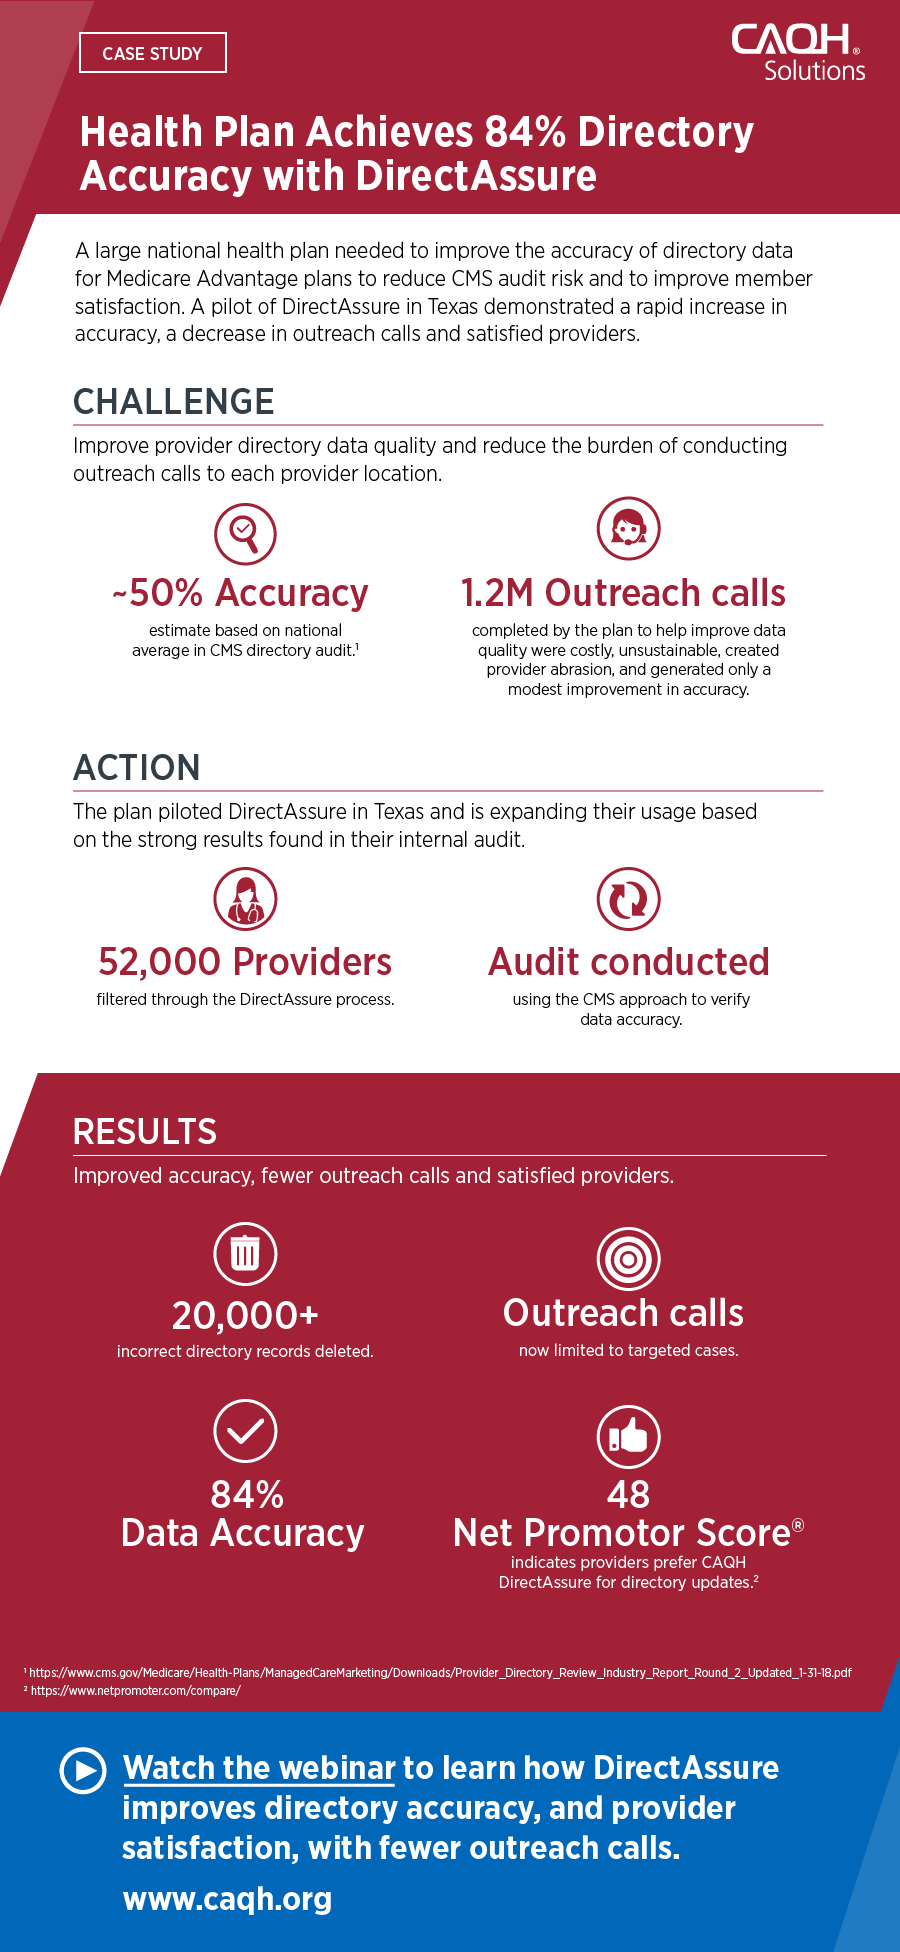 DirectAssure case study - Provider Directory Accuracy